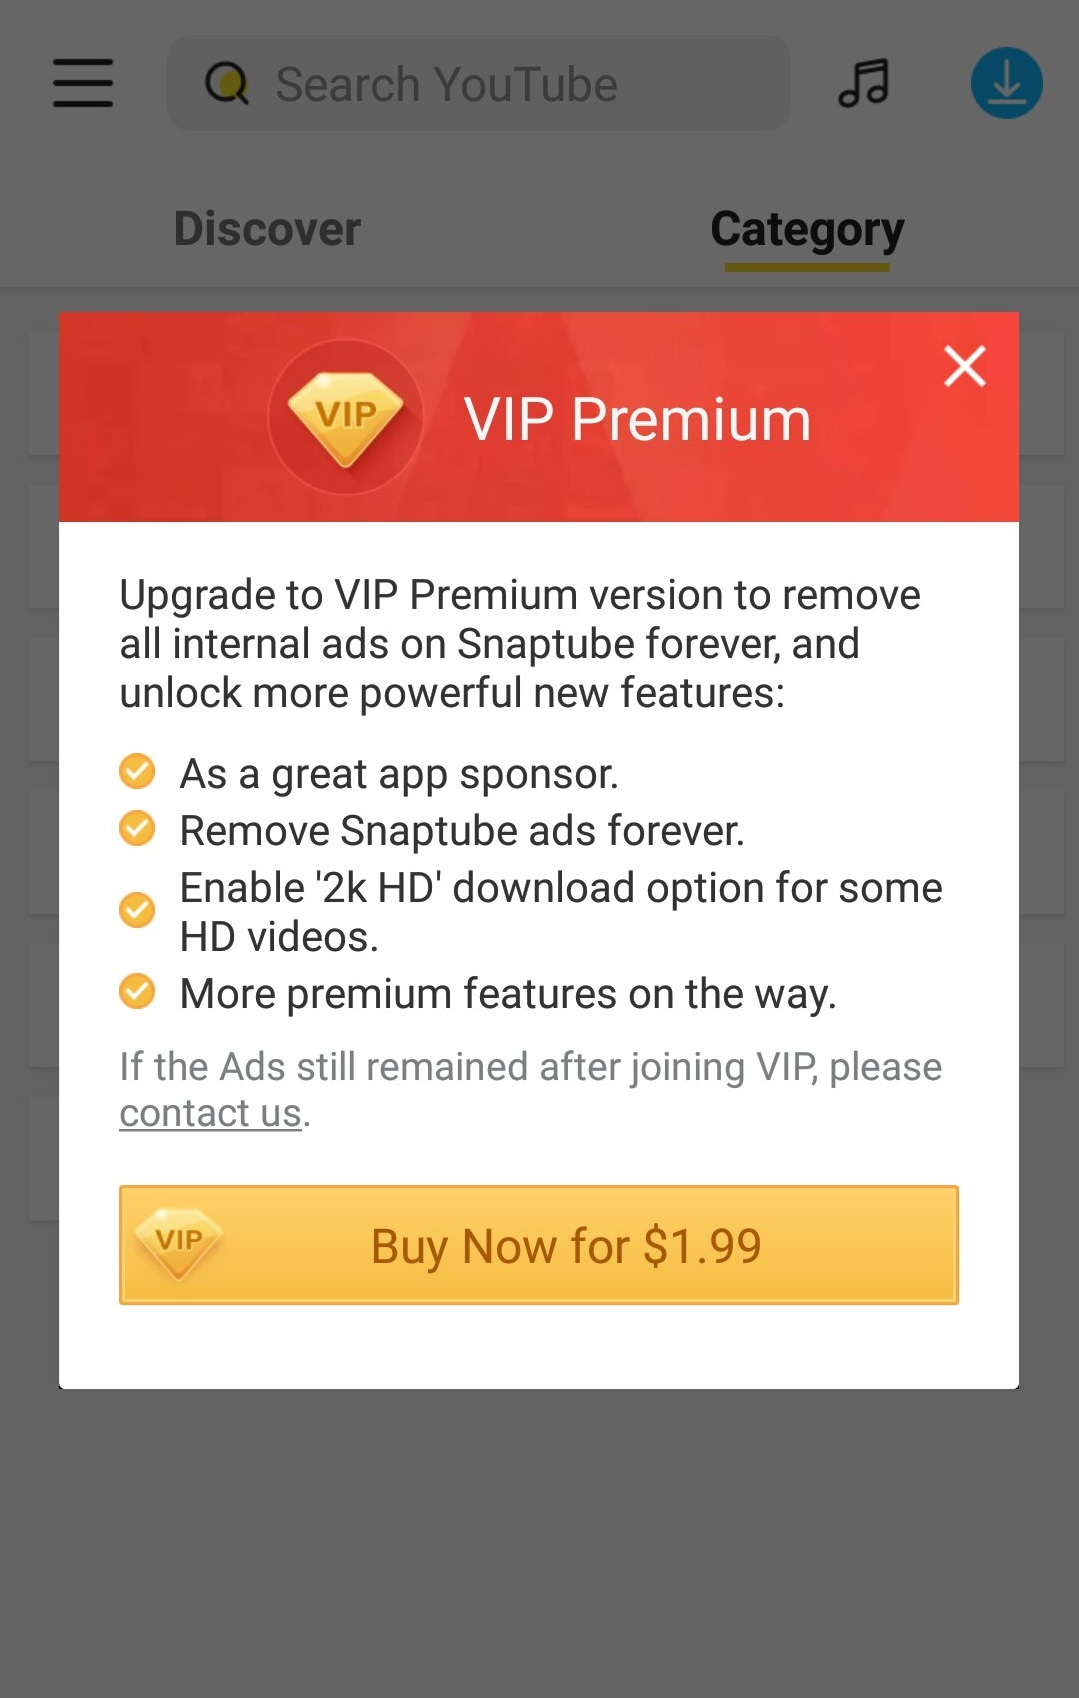 remove ads forever after paying $1.99